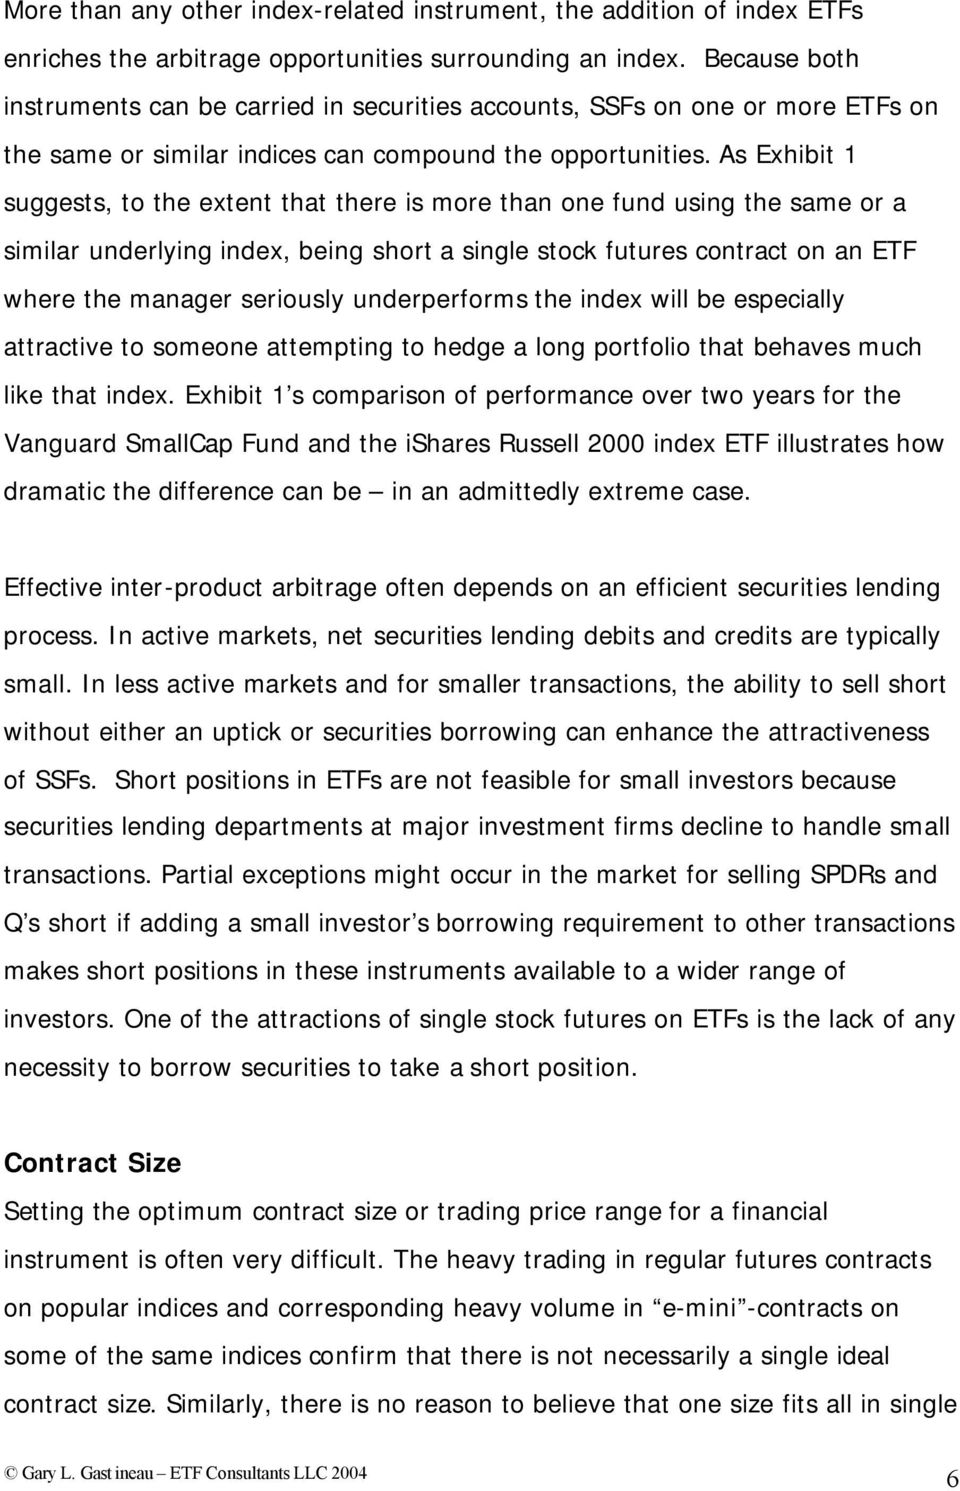 As Exhibit 1 suggests, to the extent that there is more than one fund using the same or a similar underlying index, being short a single stock futures contract on an ETF where the manager seriously